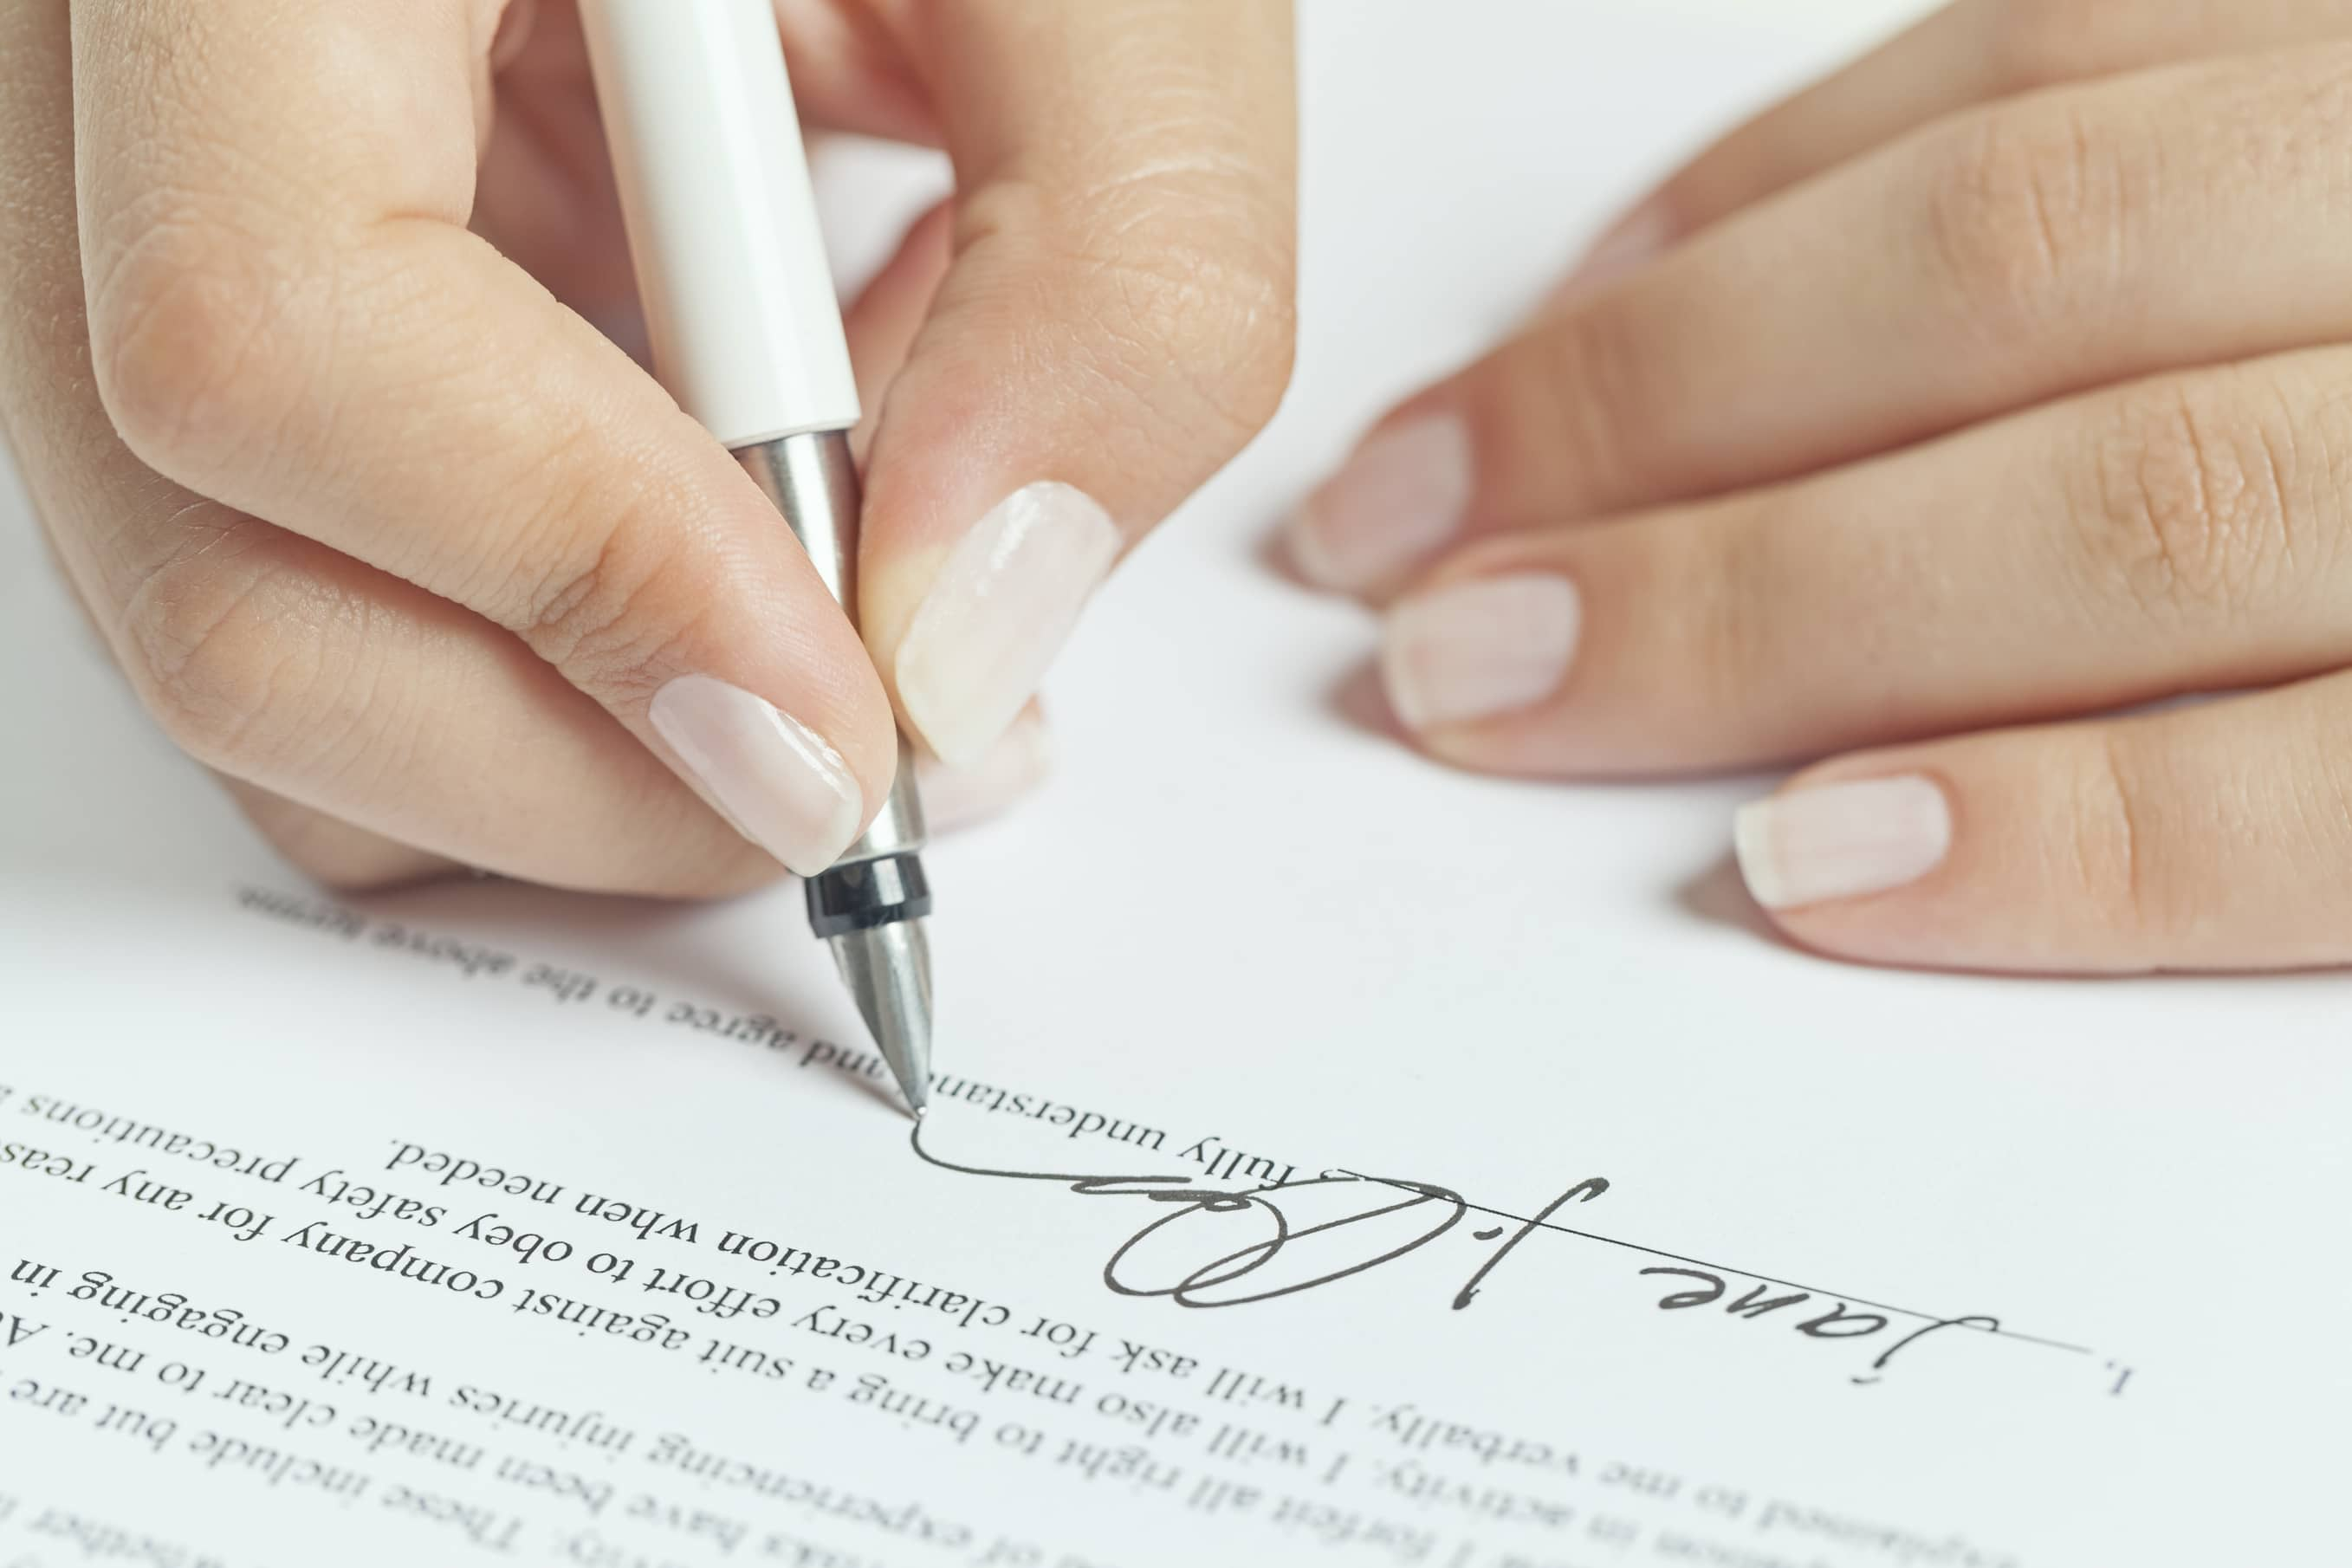 writing service agreements Resume services - contract agreement - resume services - woodbridge, va career consulting services, resume writing & editing services.